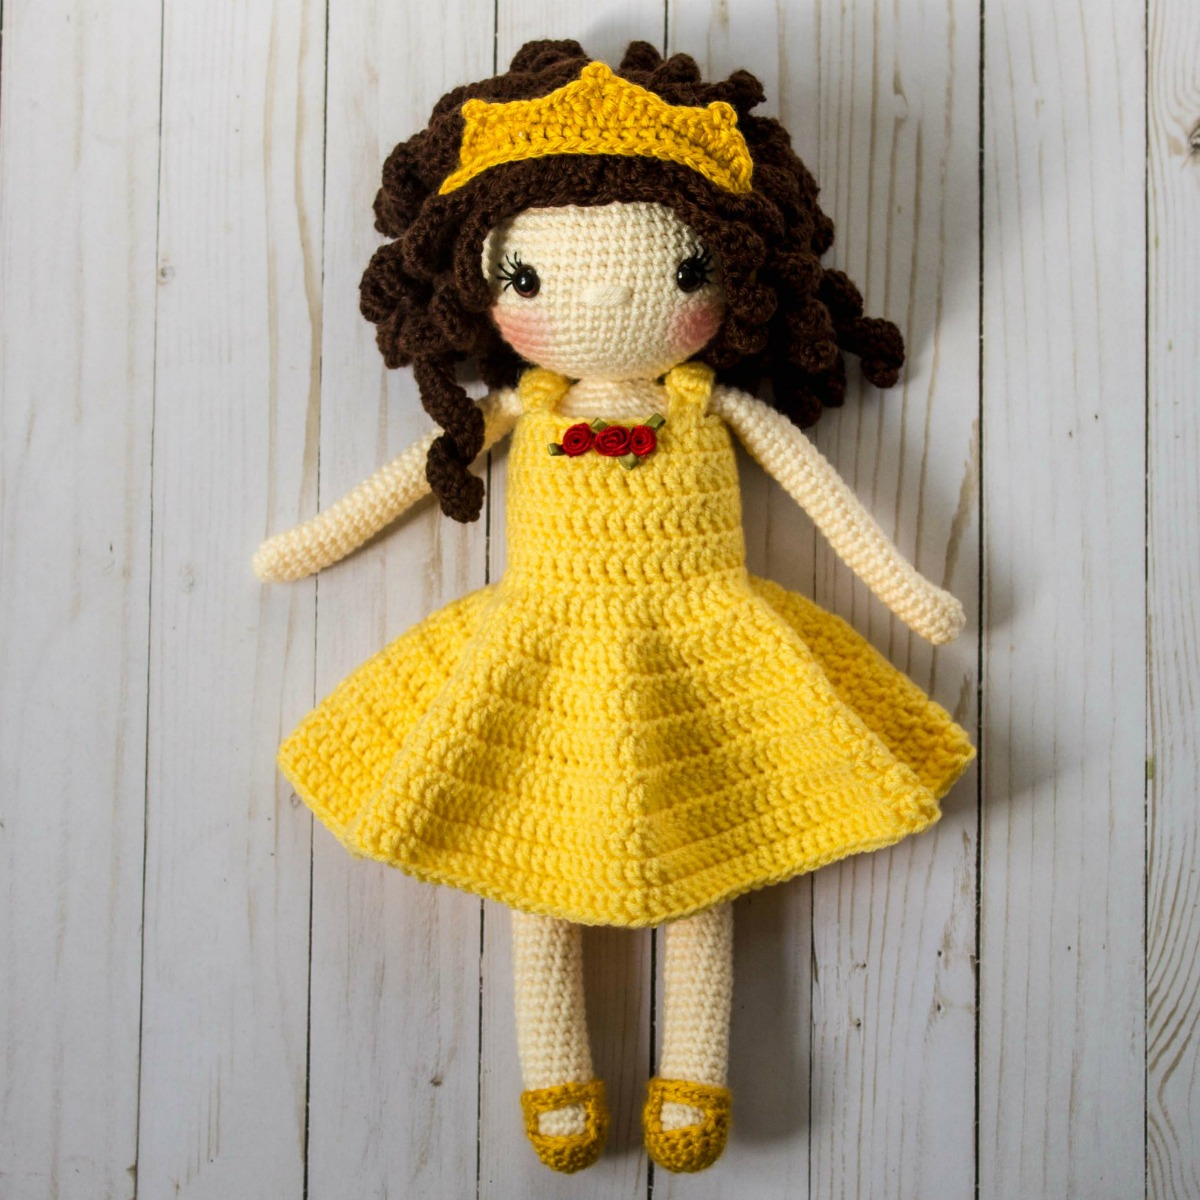 make the tail for mermaid sophie! interested in more free crochet doll ... vwtinwb